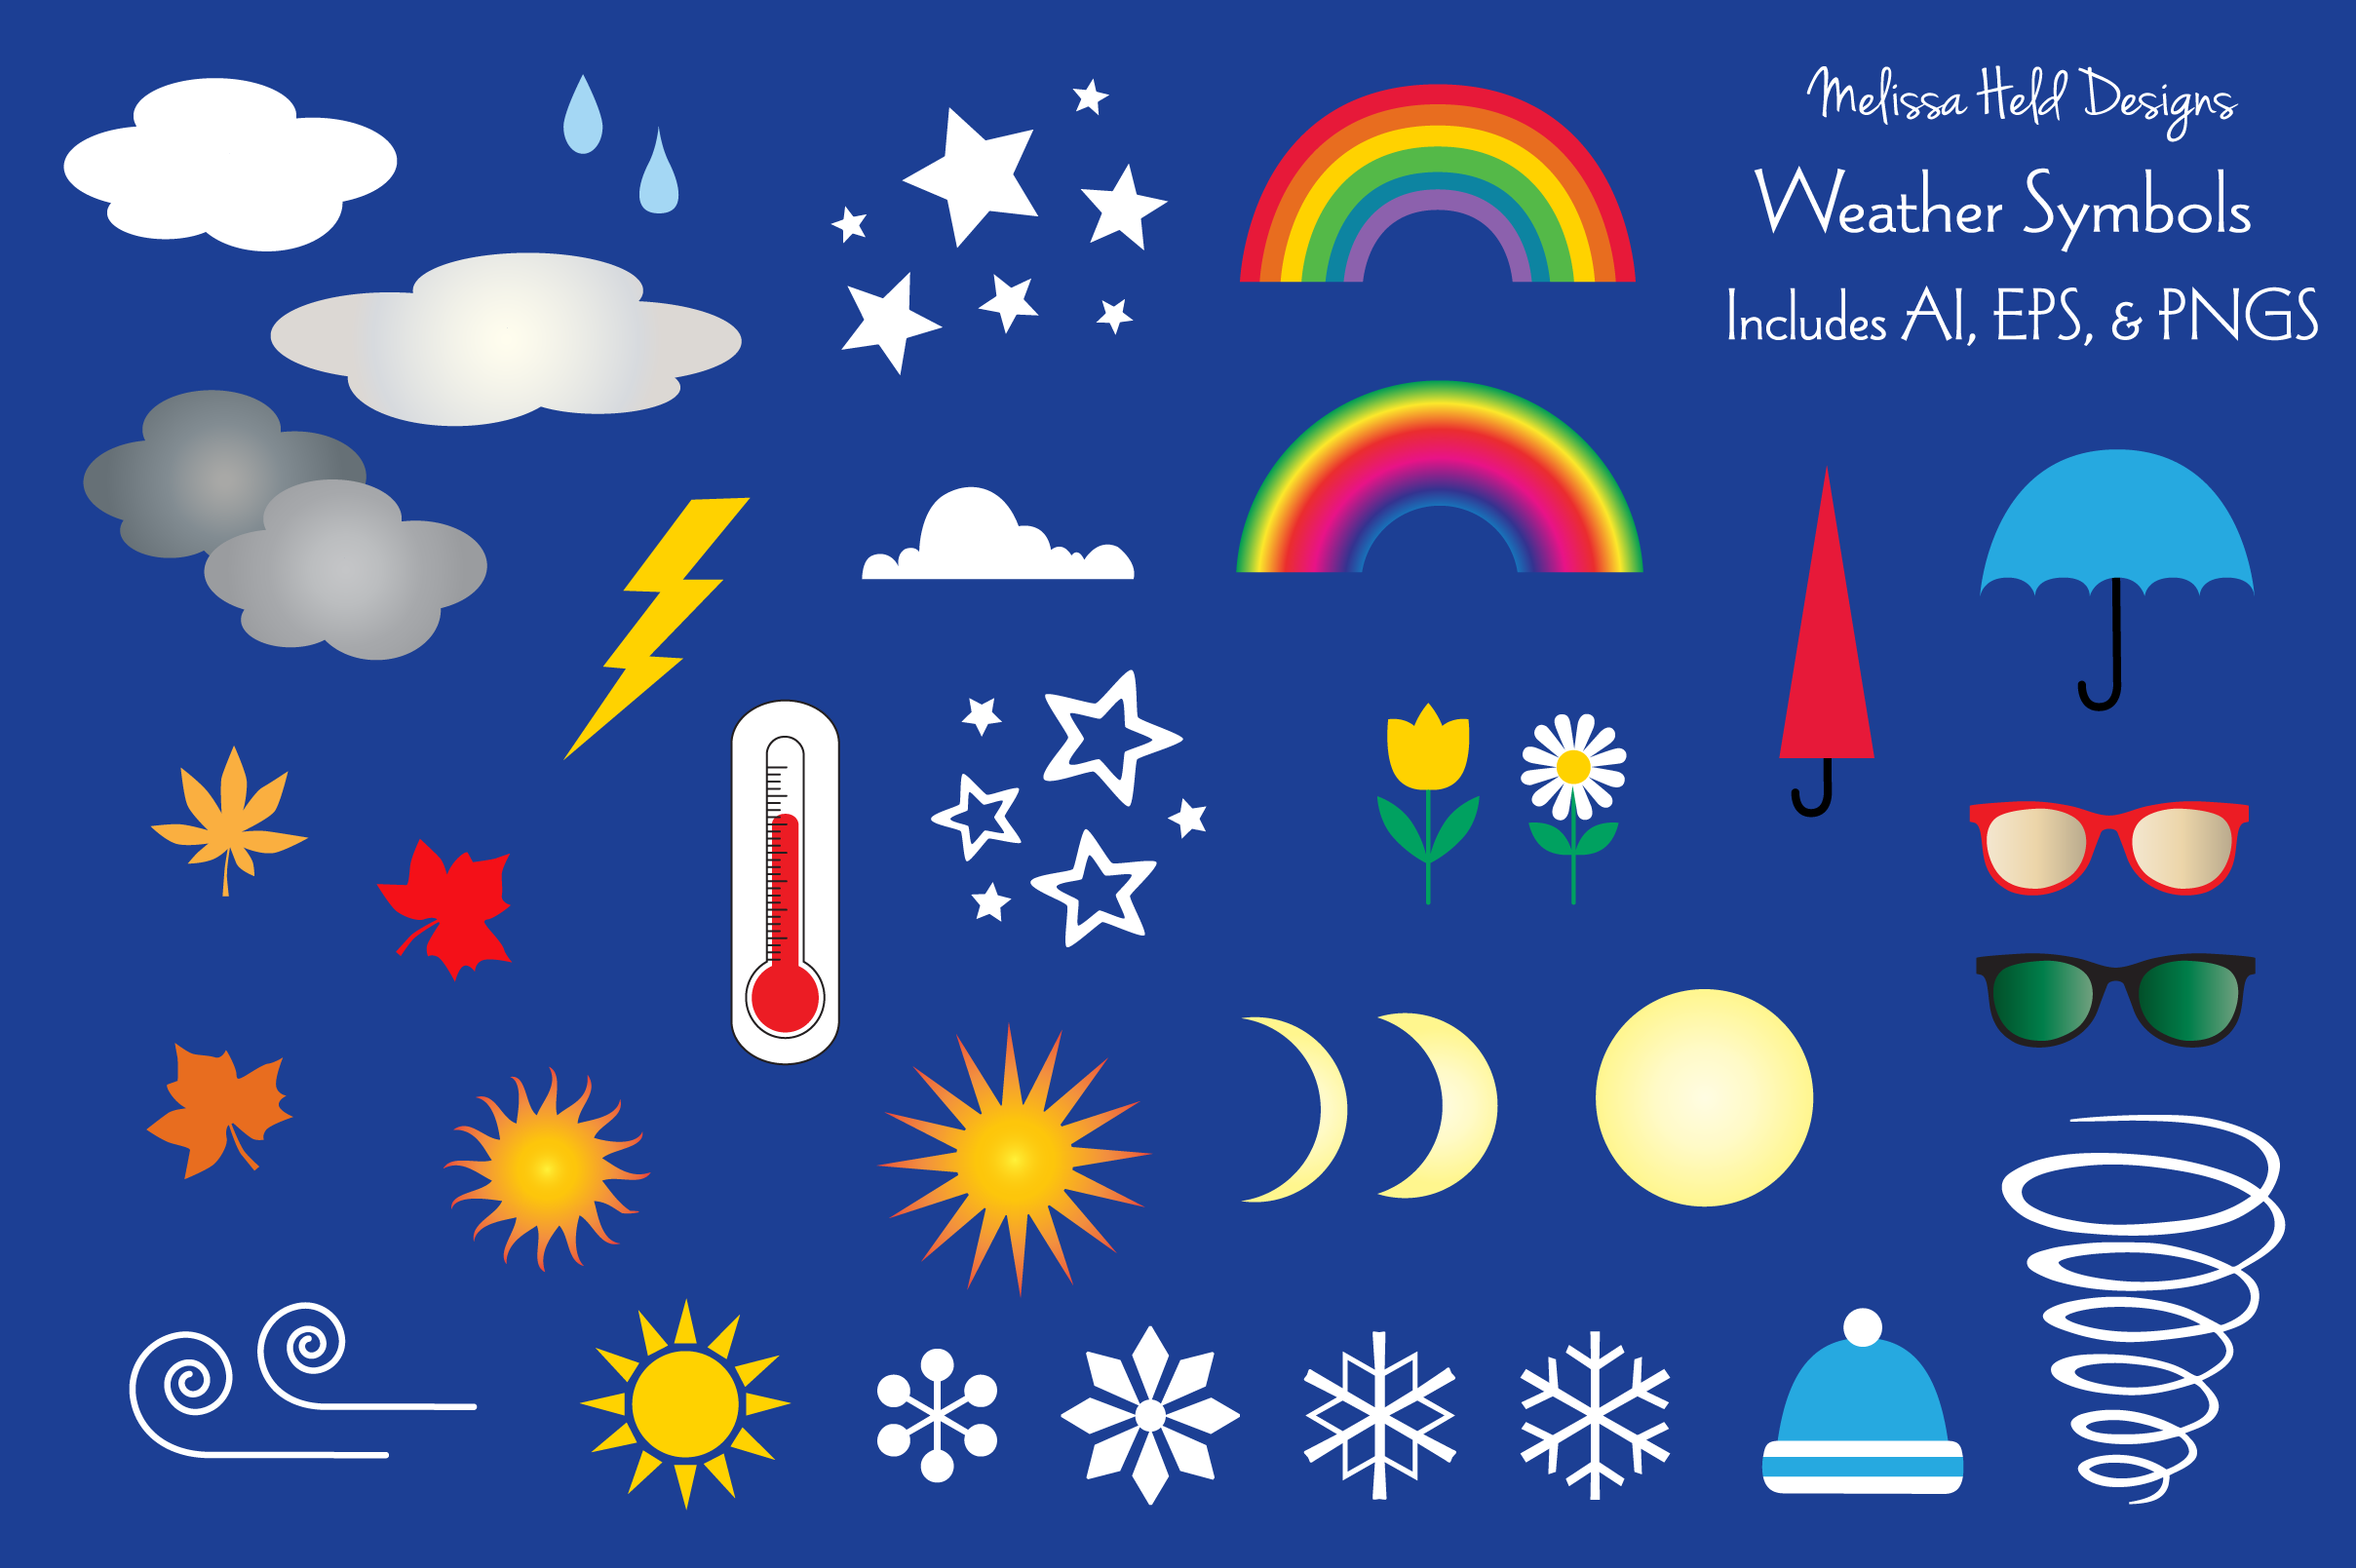 Download Free Weather Symbols Graphic By Melissa Held Designs Creative Fabrica for Cricut Explore, Silhouette and other cutting machines.